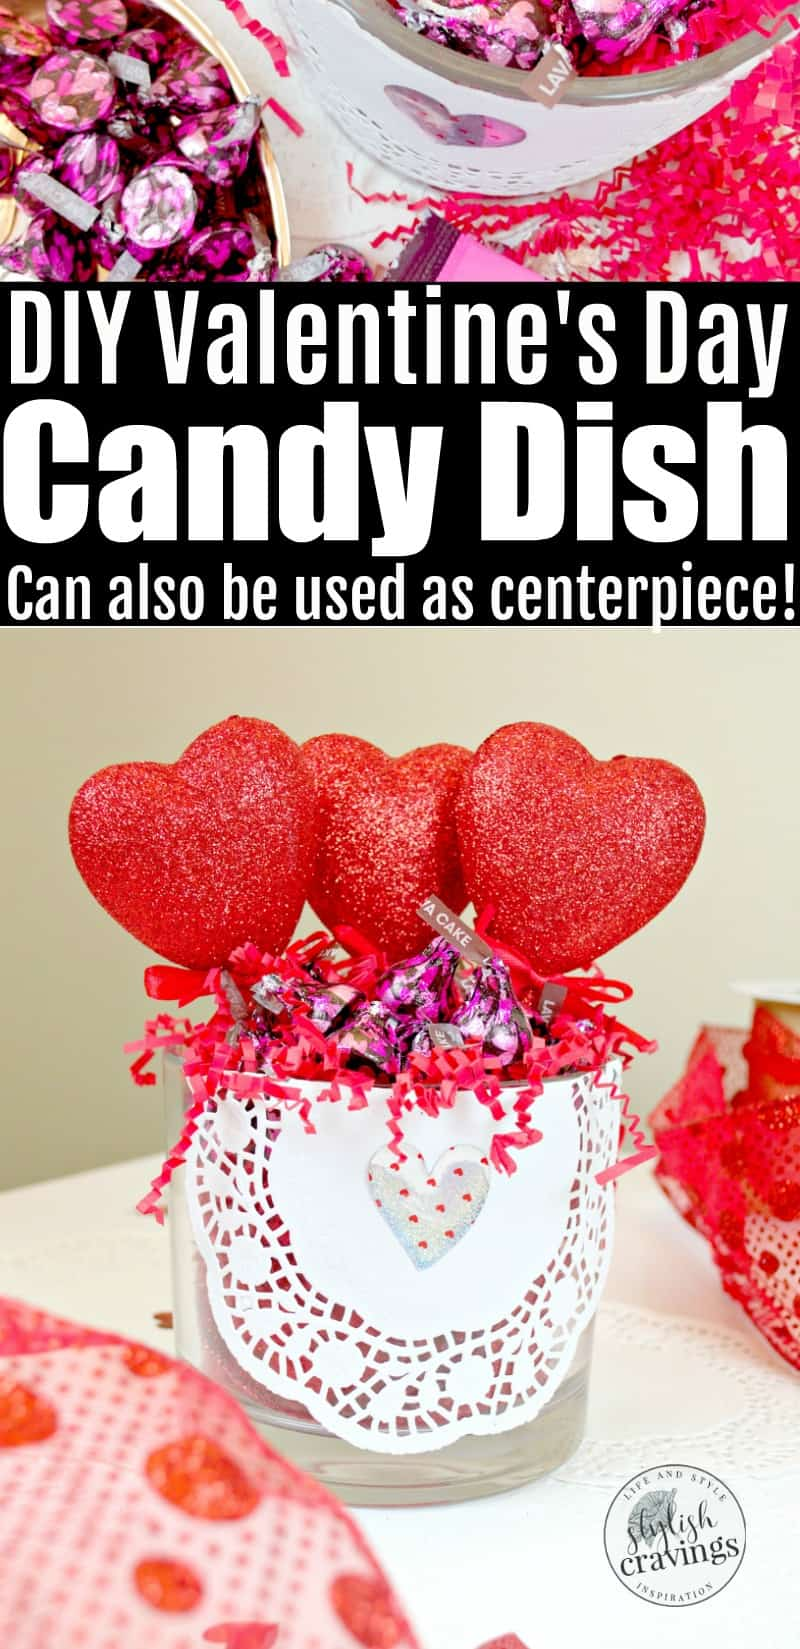 DIY Valentine's Day Candy Dish